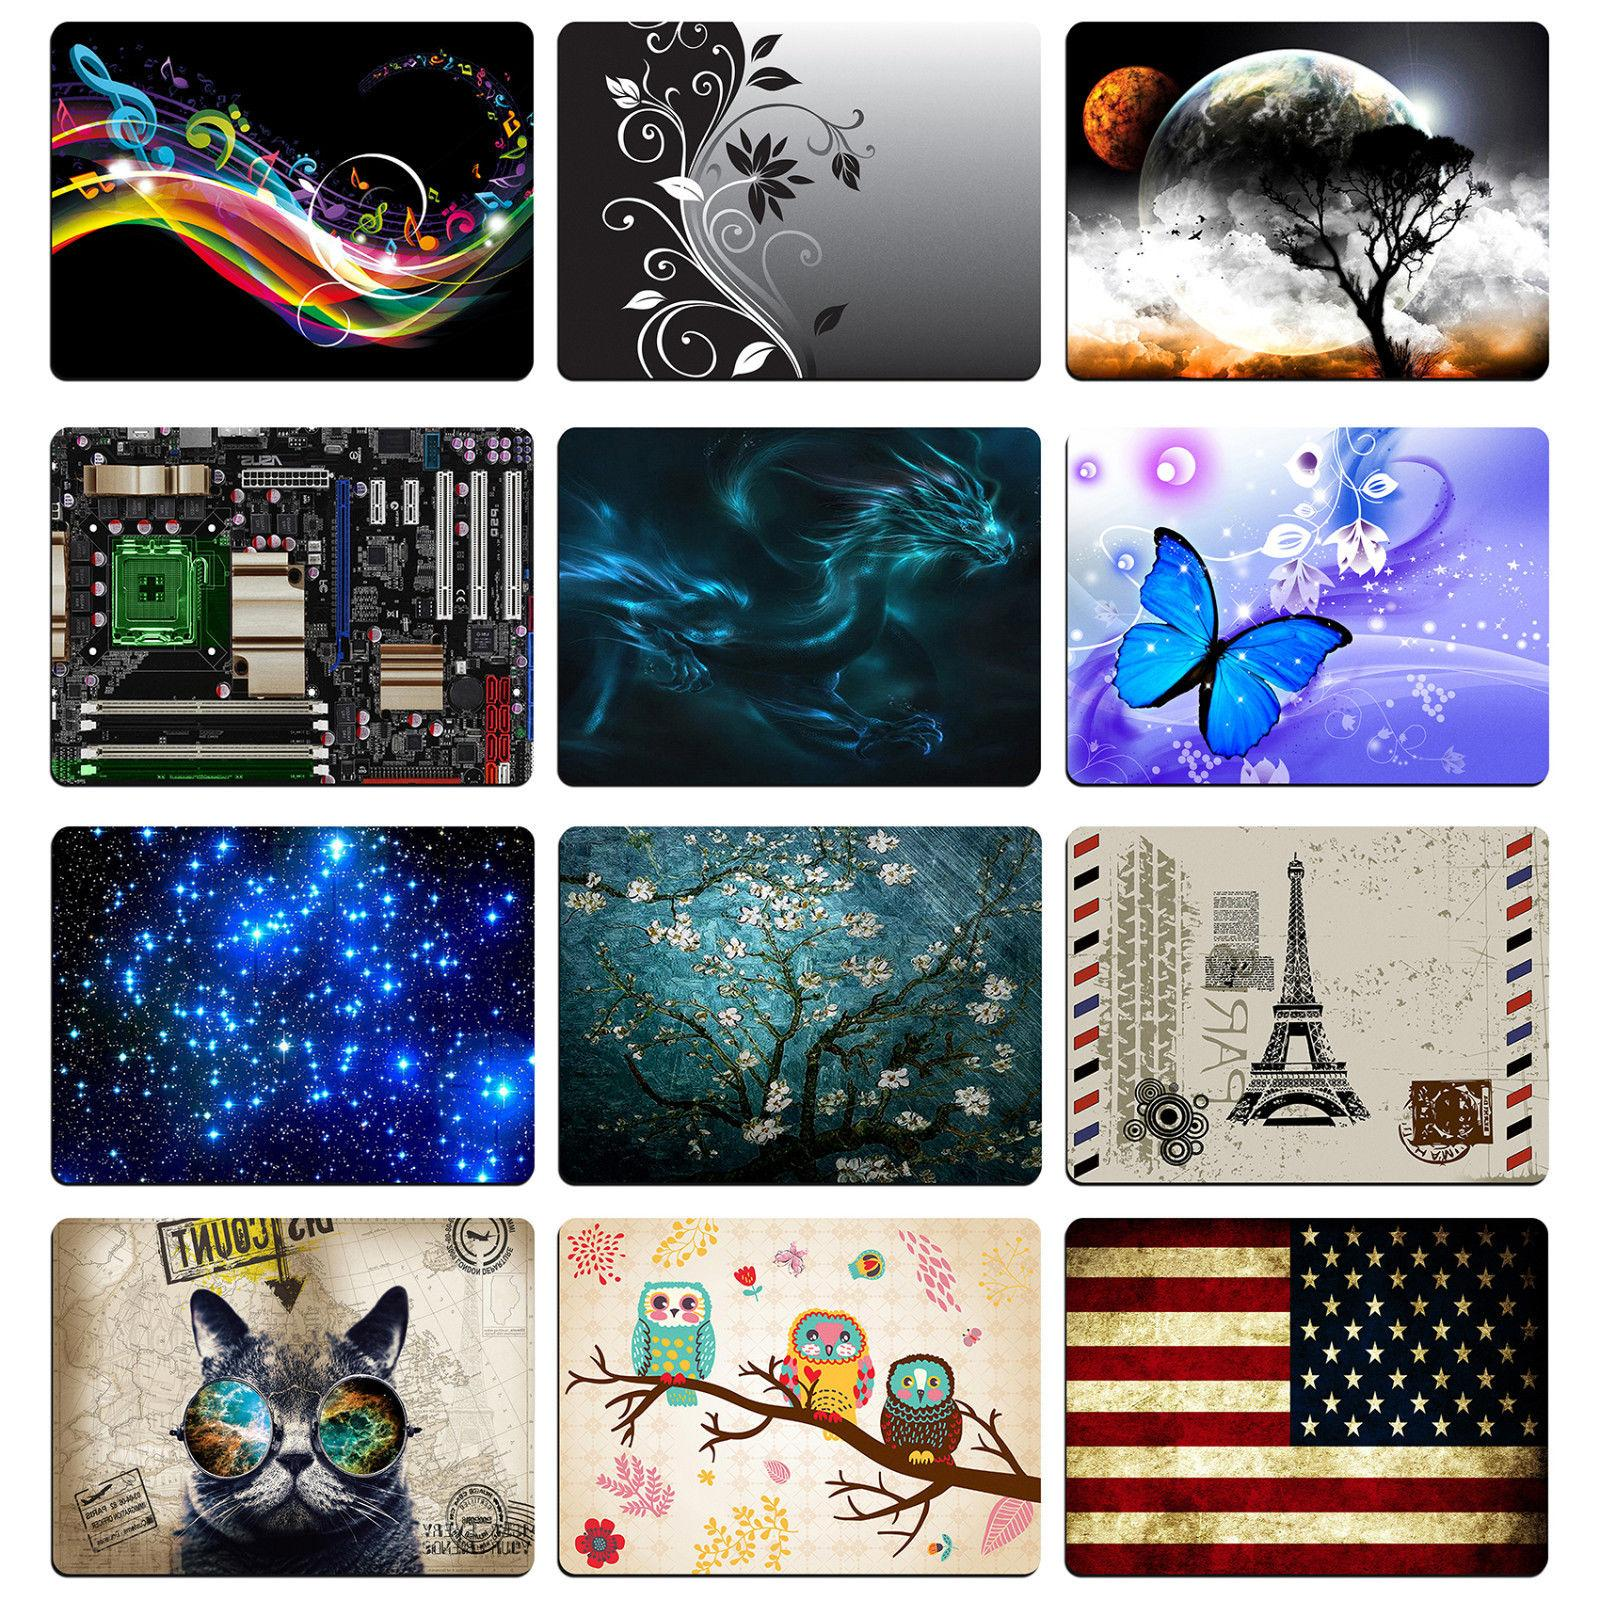 Soft X Large Optical Gaming 13.75 x 10.25 inch Mouse Pad Mat